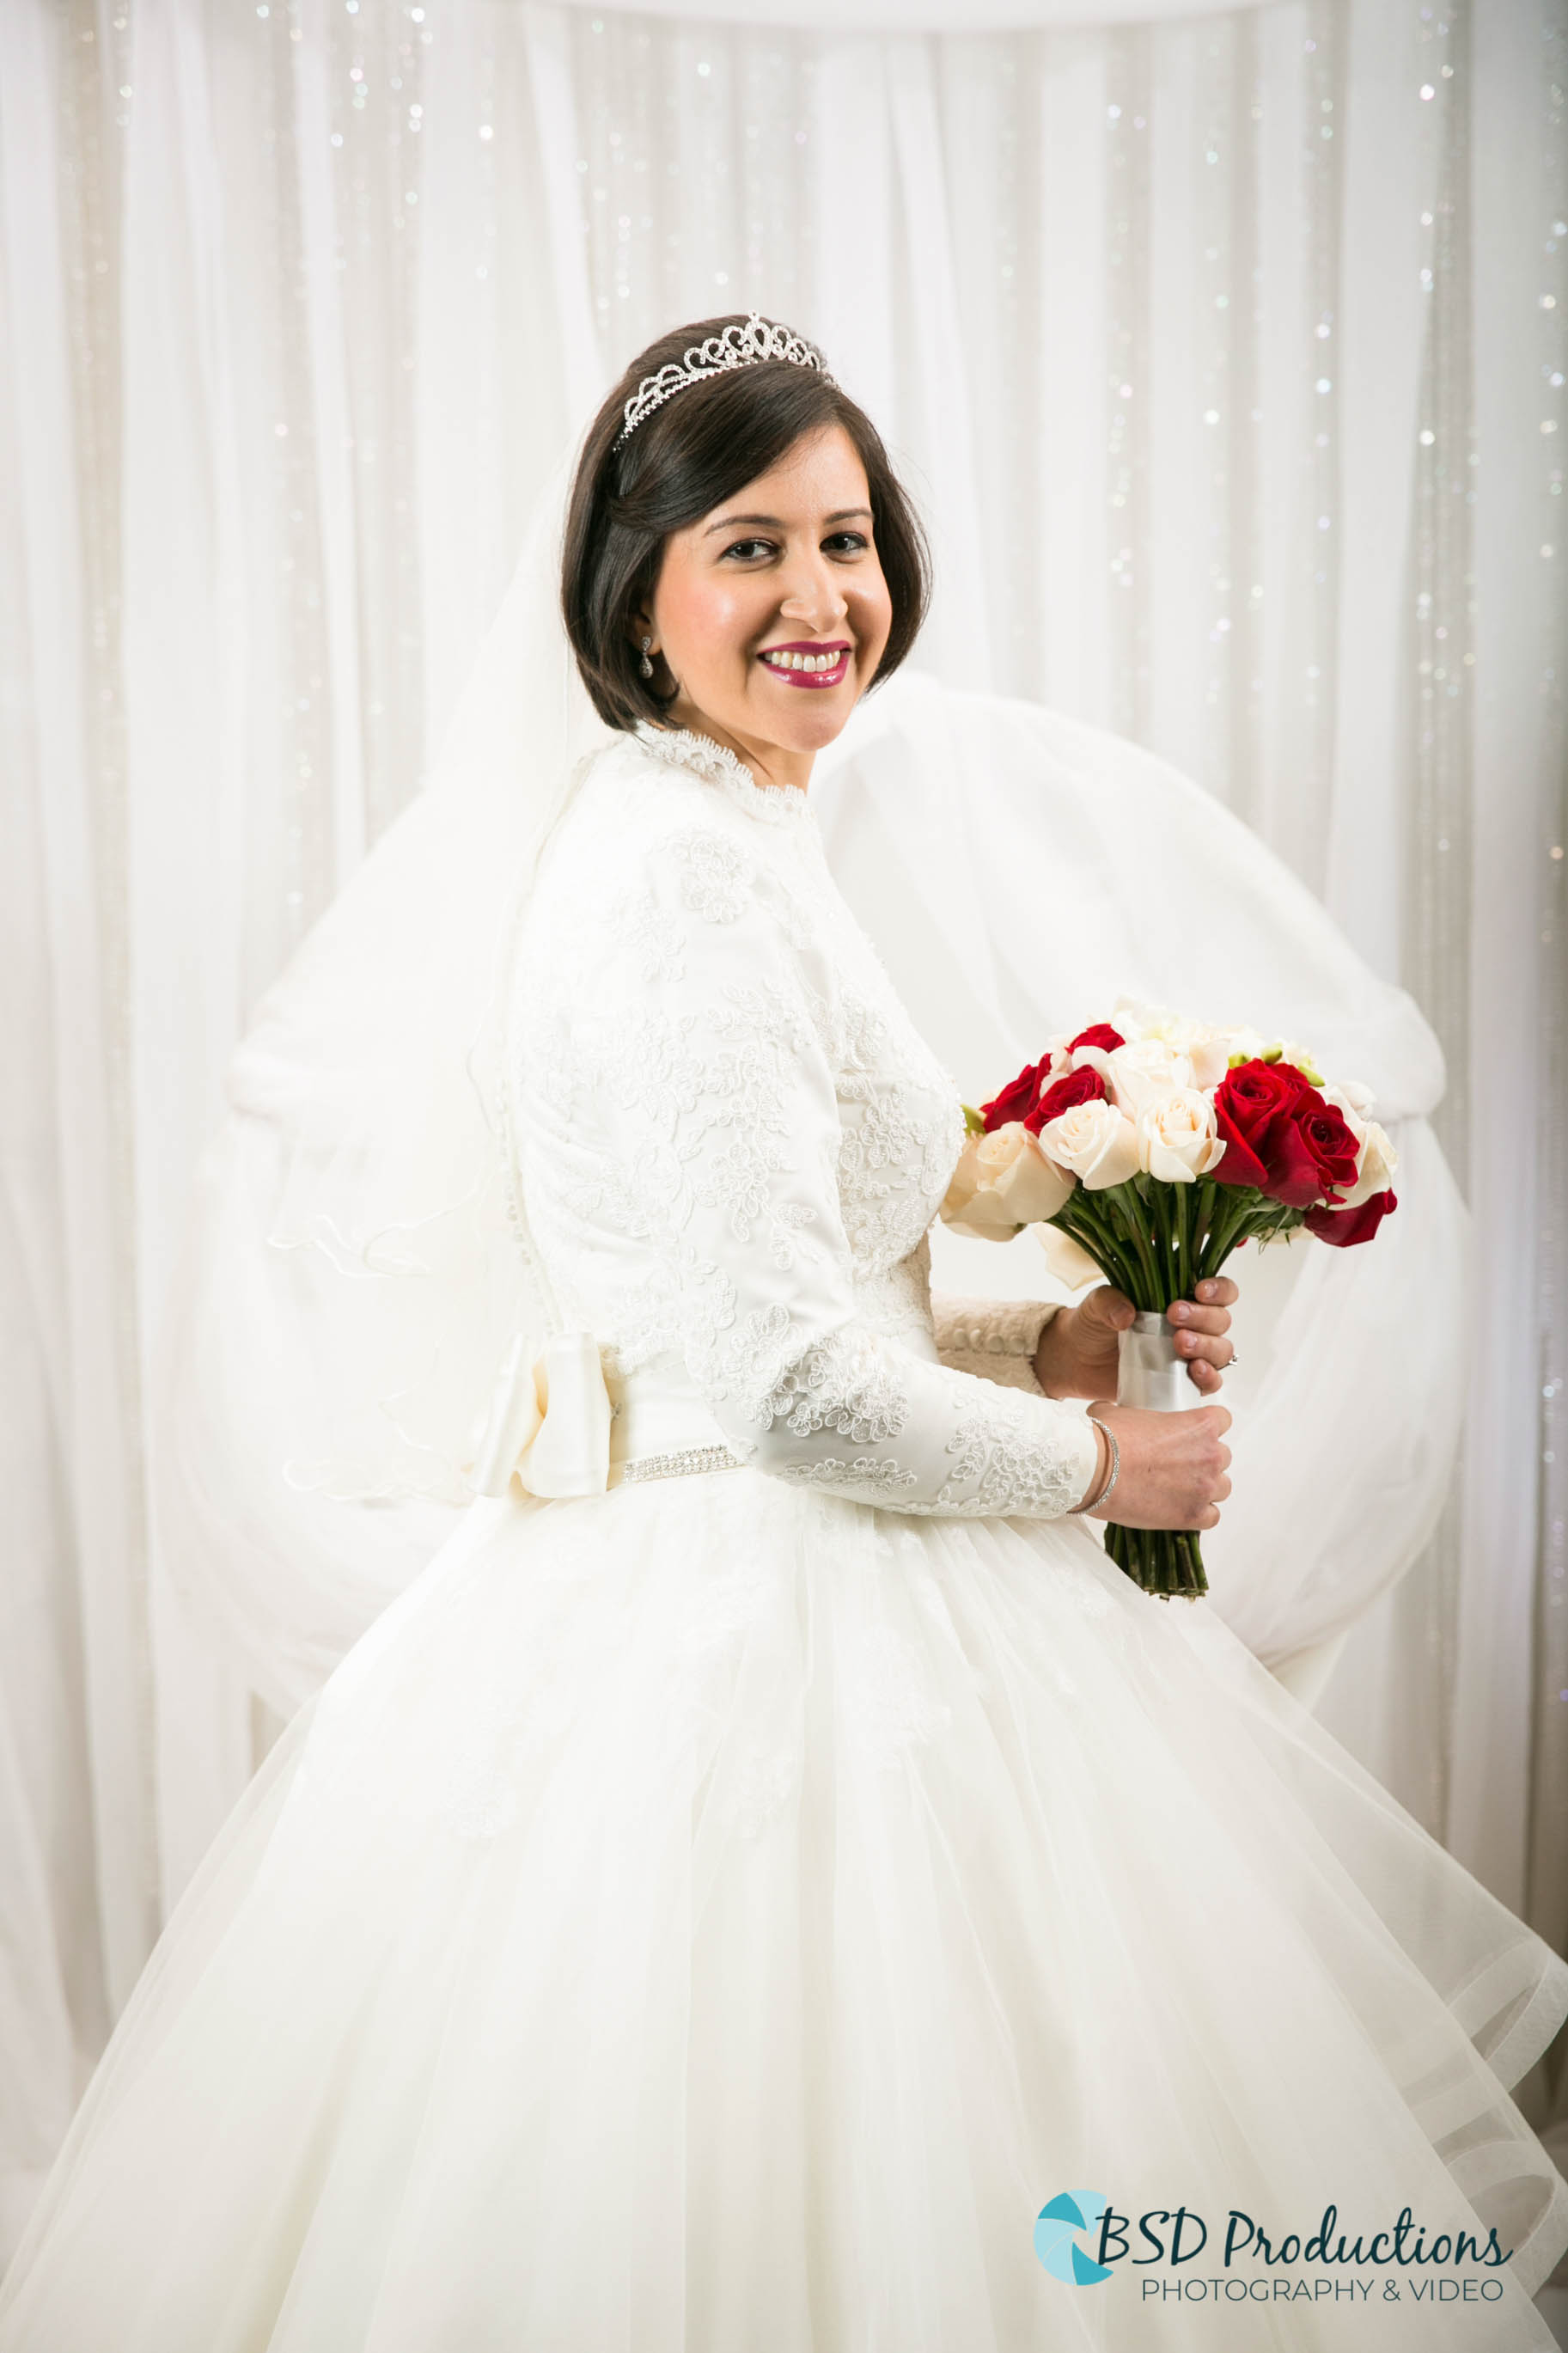 UH5A2359 Wedding – BSD Productions Photography